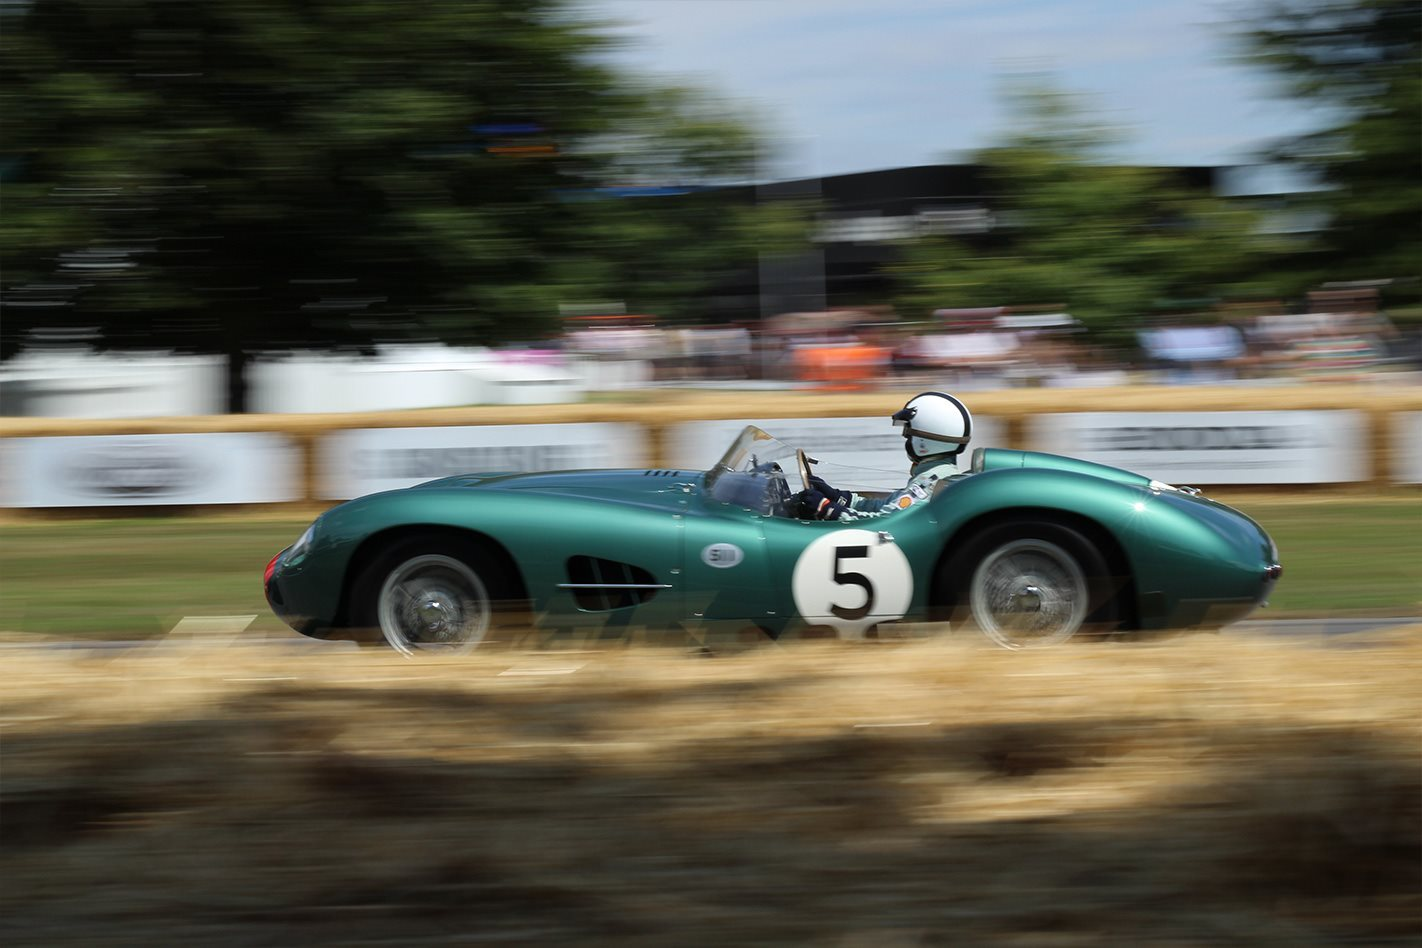 Aston Martin DBR1 at the Goodwood Festival of Speed